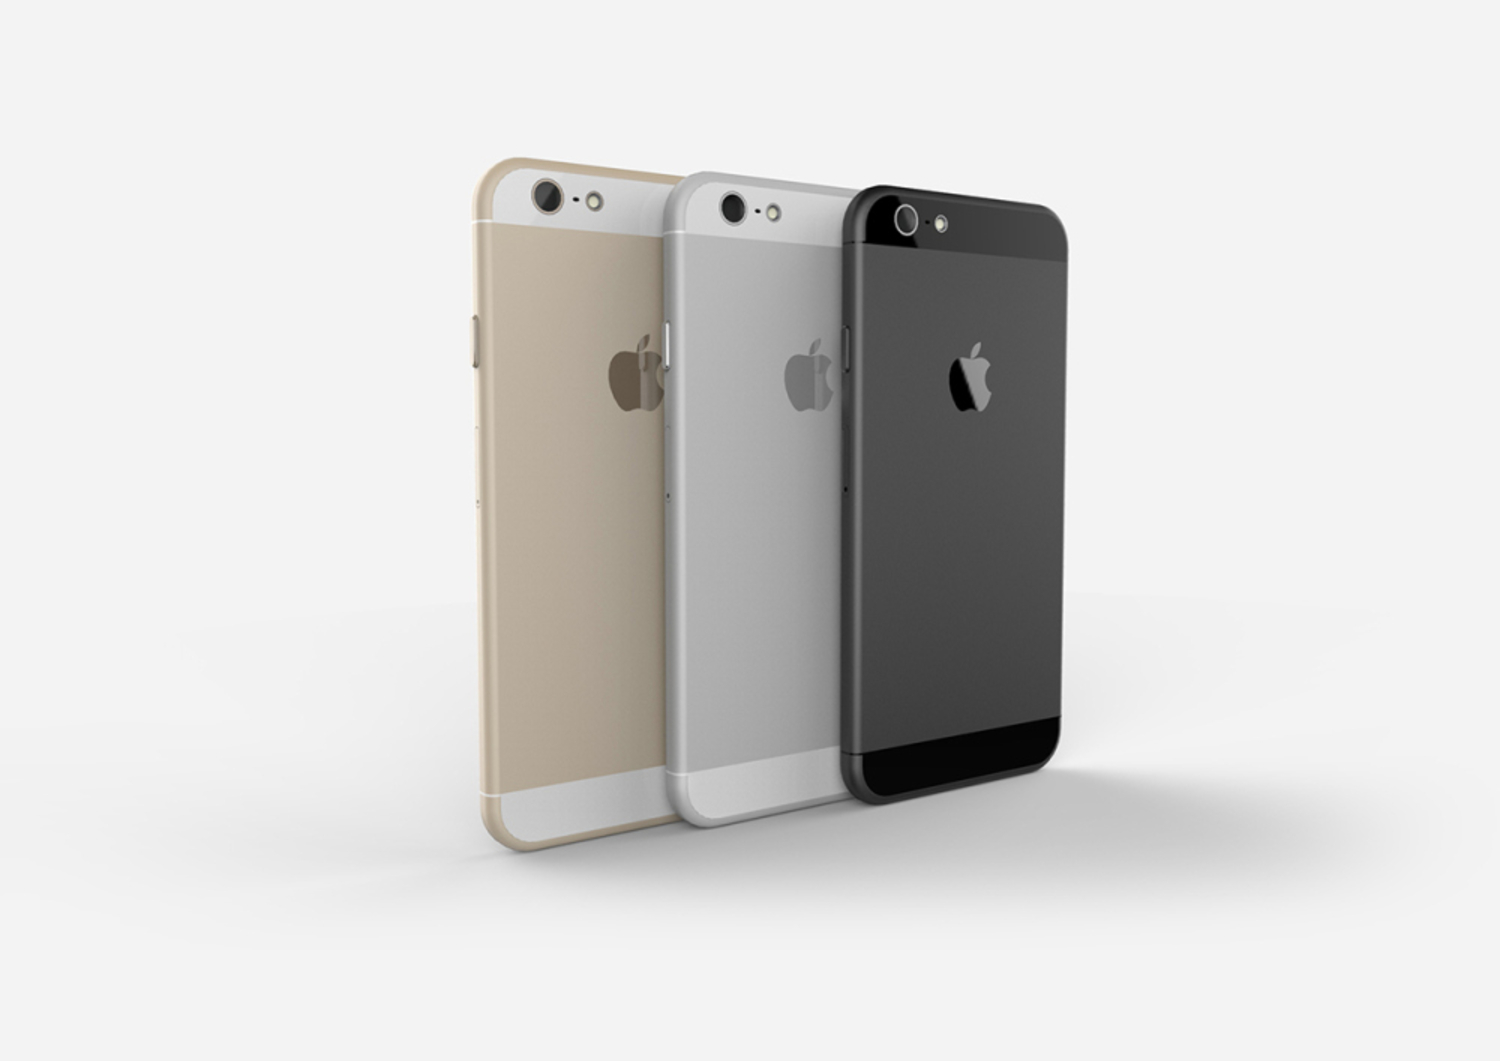 6 Reasons The iPhone 6 Is An Endangered Species